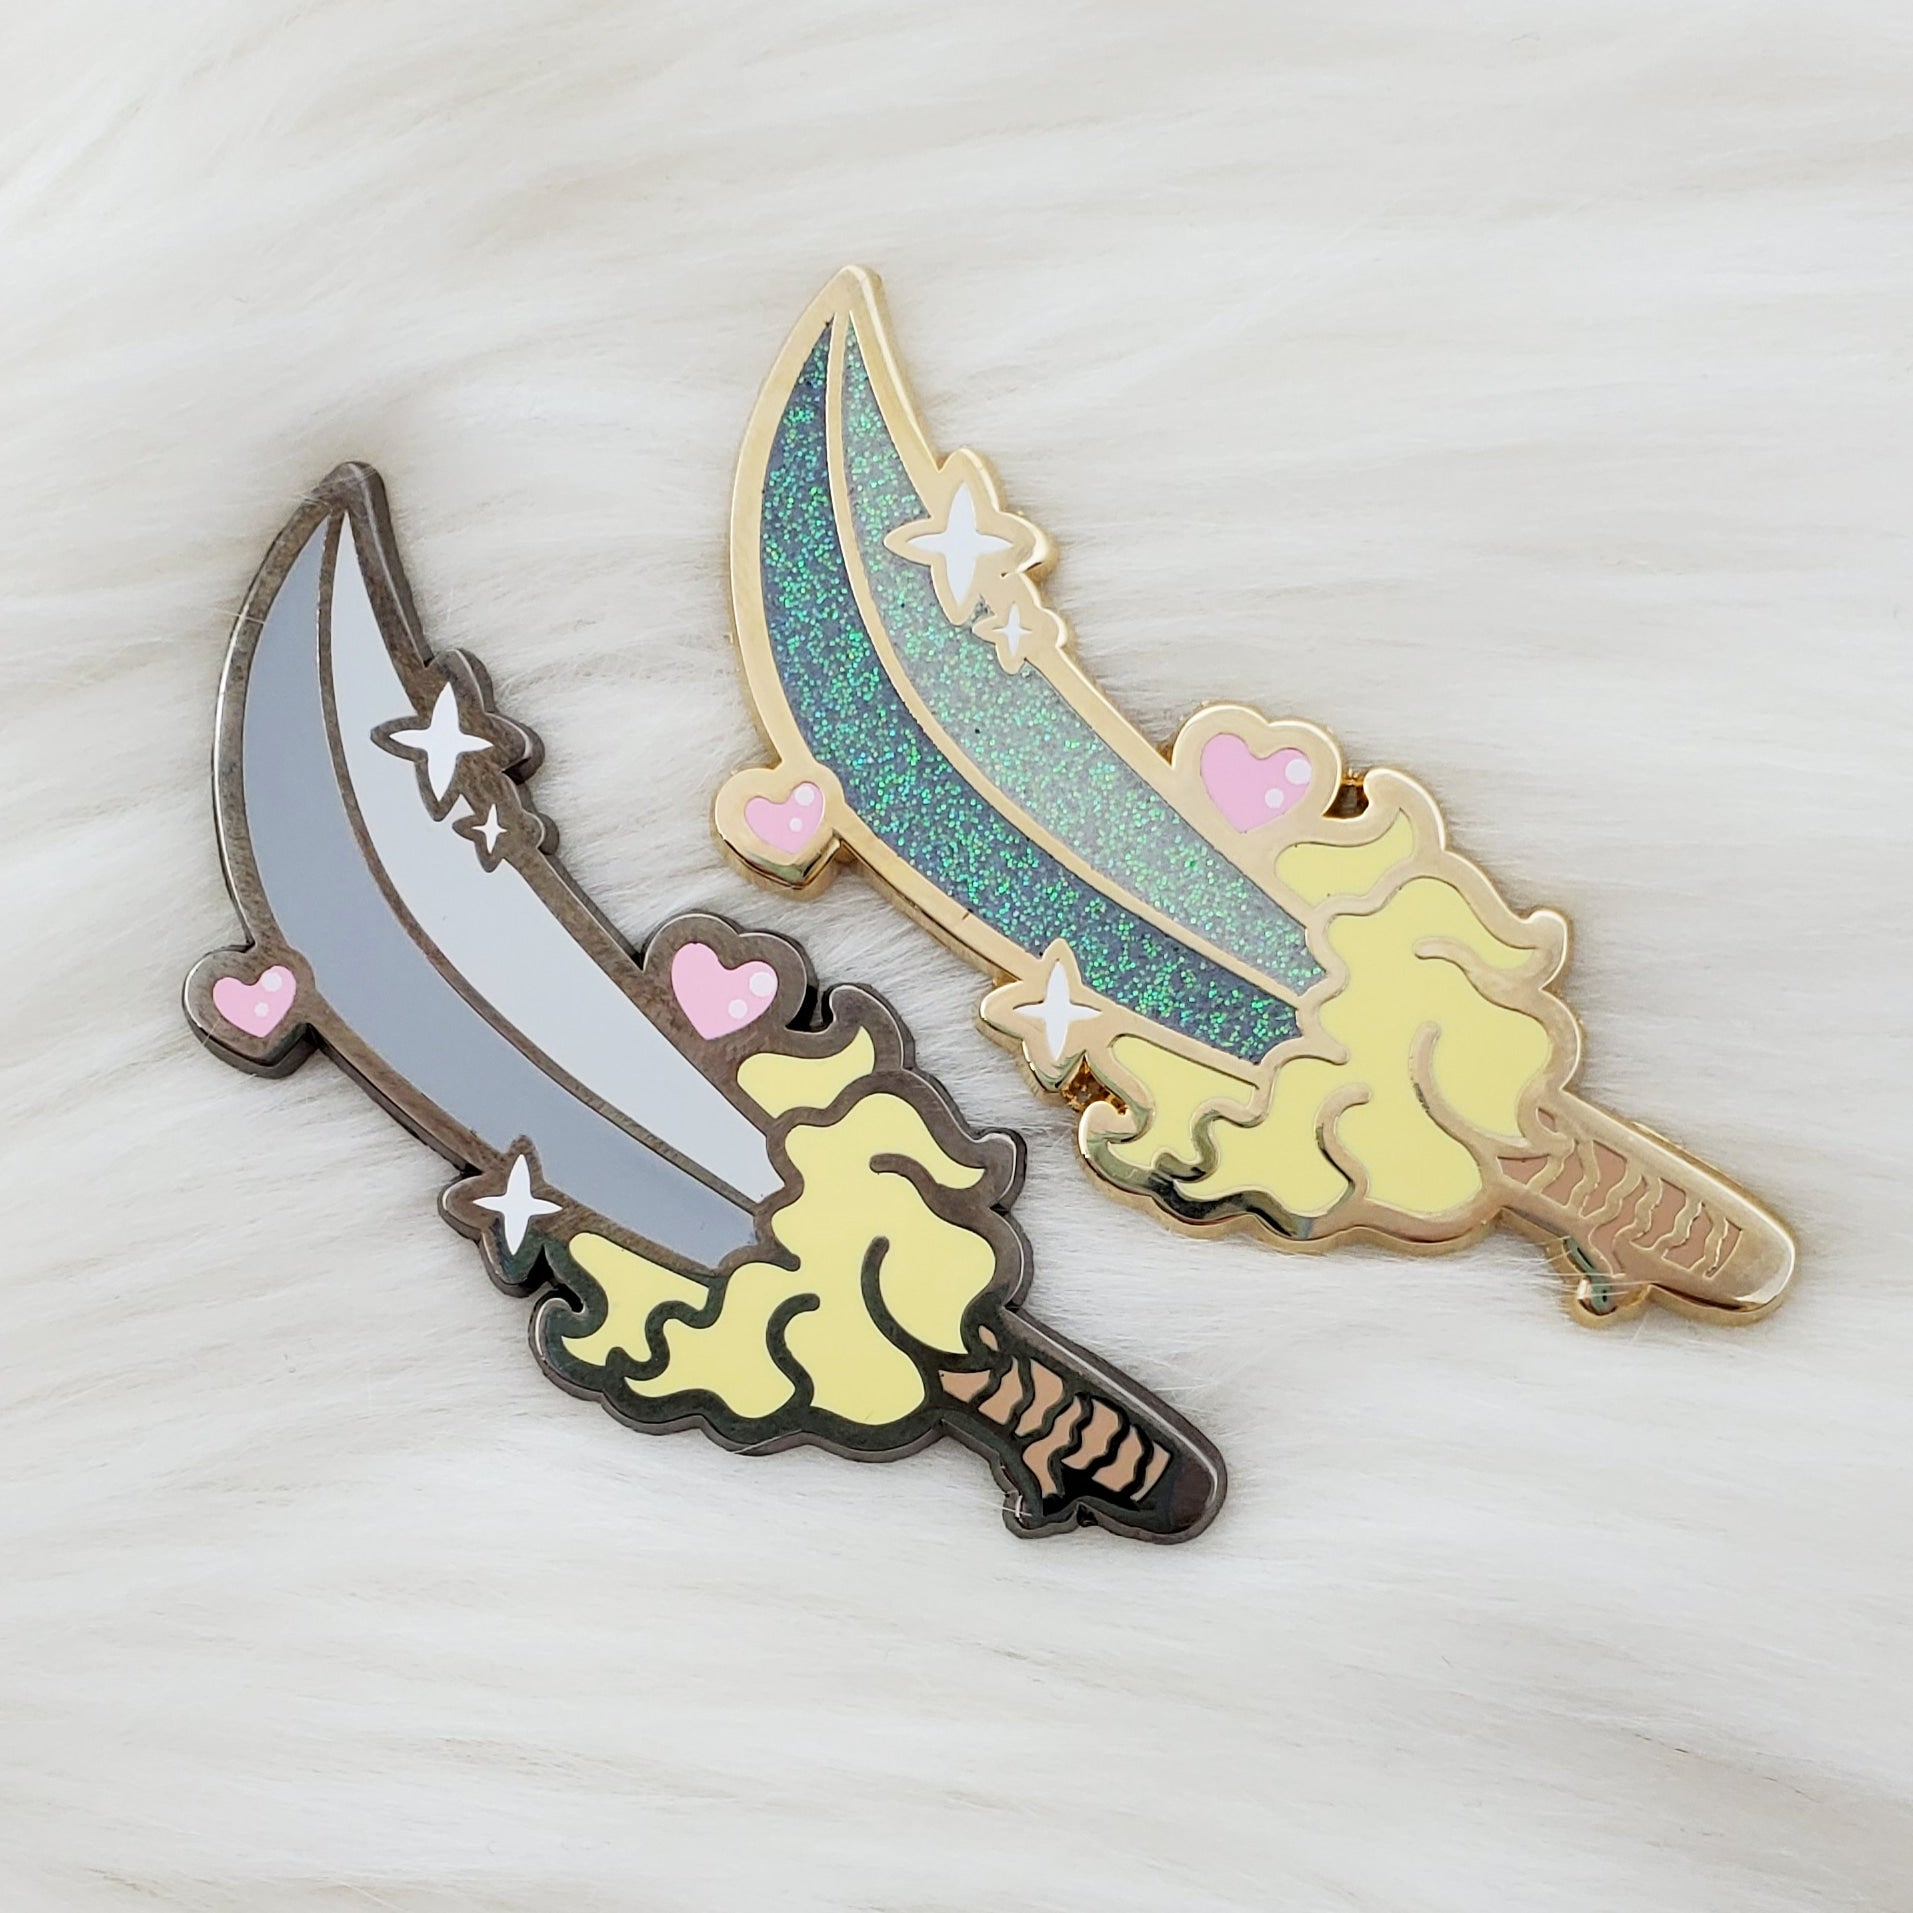 ♡ Sword of Destruction Enamel Pin ♡